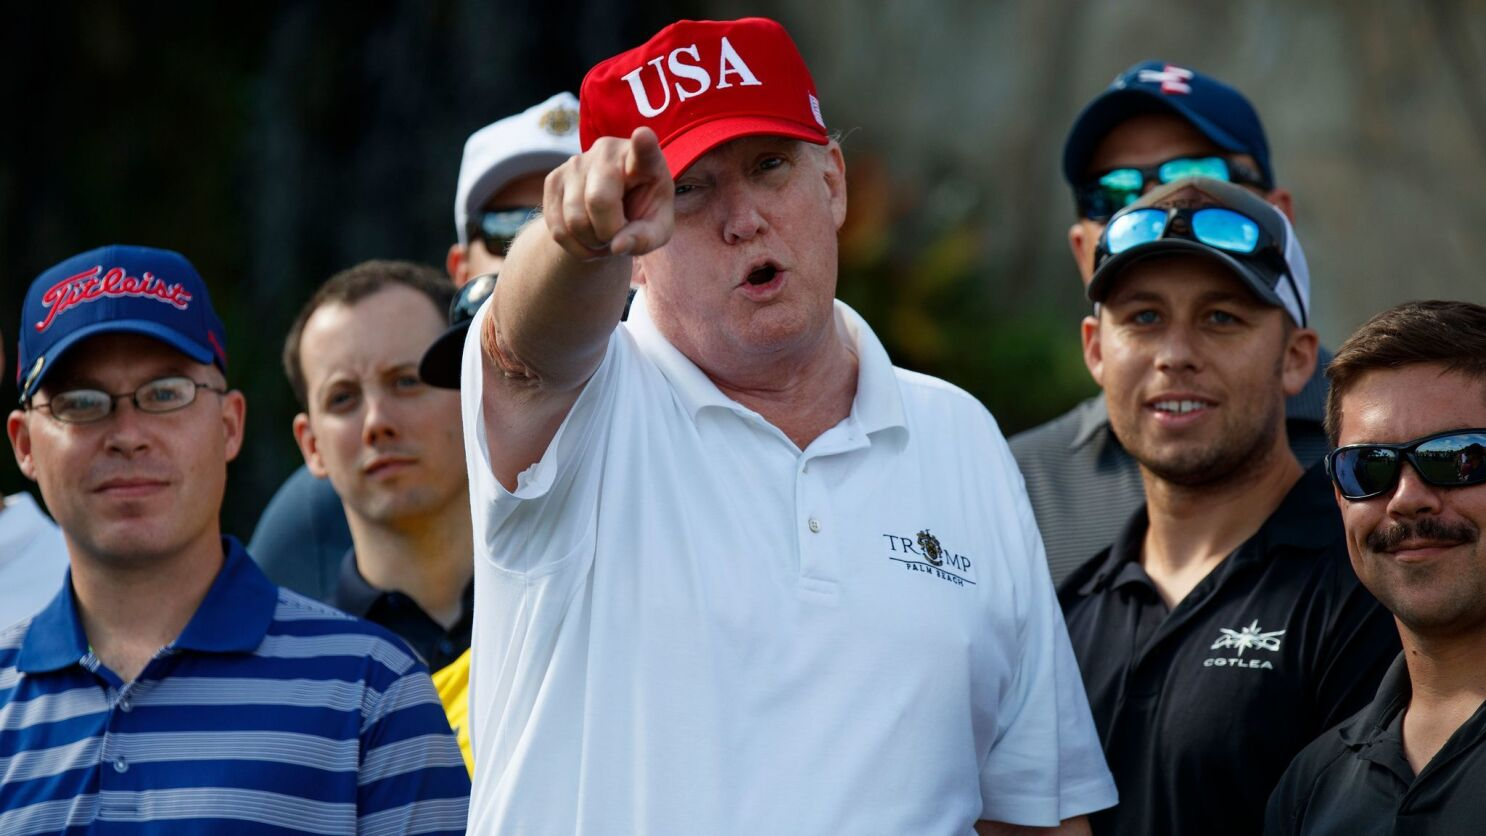 Lpga S Suzann Pettersen Says Her Words About Trump Cheating At Golf Were Taken Out Of Context Los Angeles Times